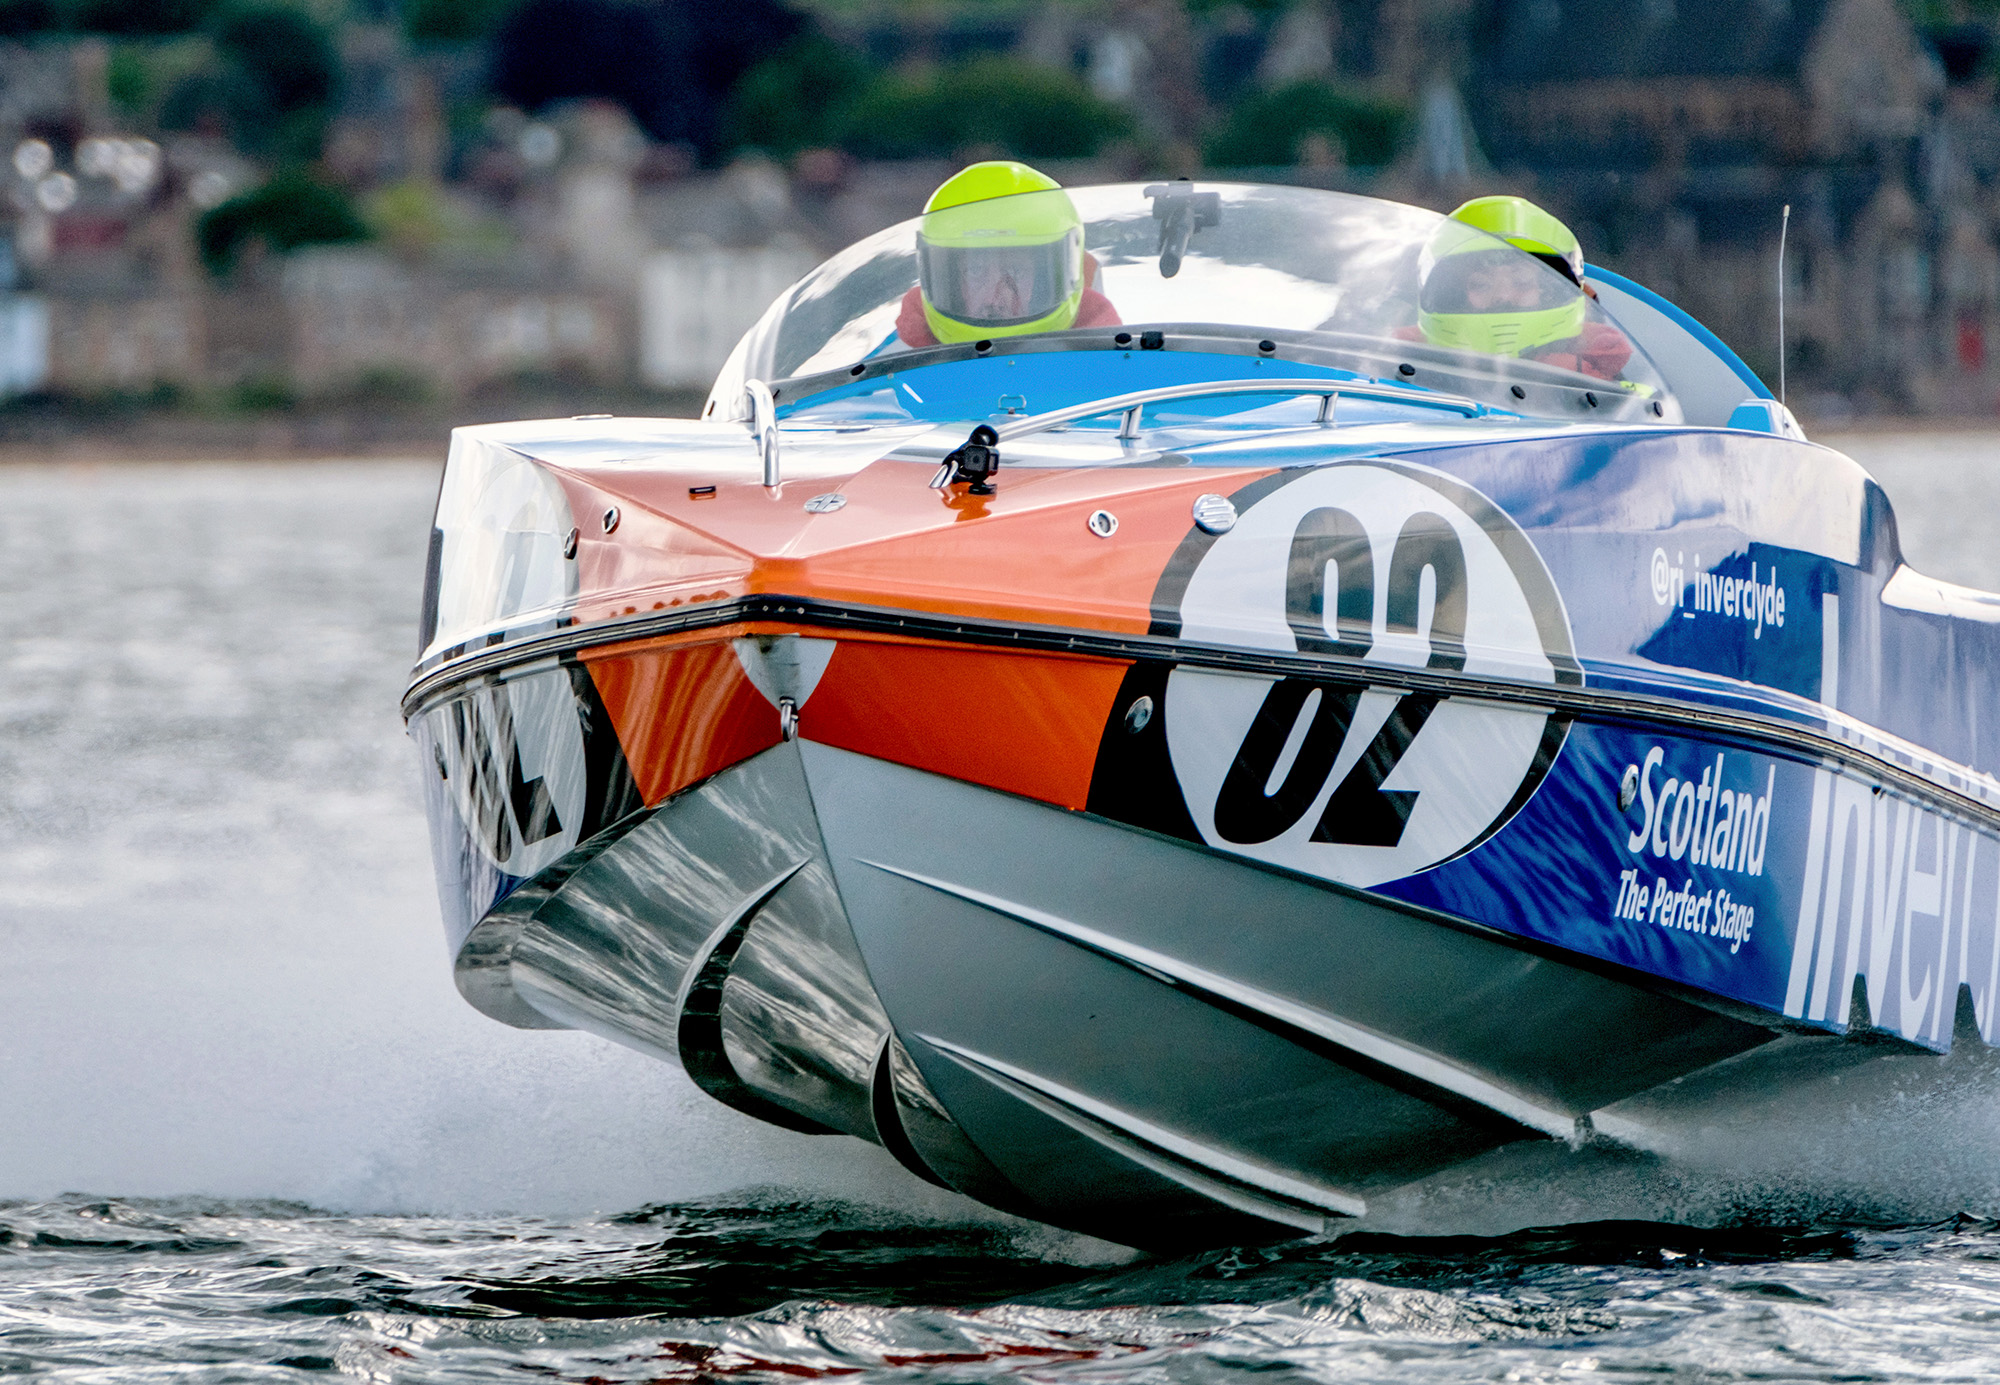 P1 SUPERSTOCK POWERBOAT RACING    Shooting behind the scenes with one of the leading crews in the 2017 P1 Superstock Series